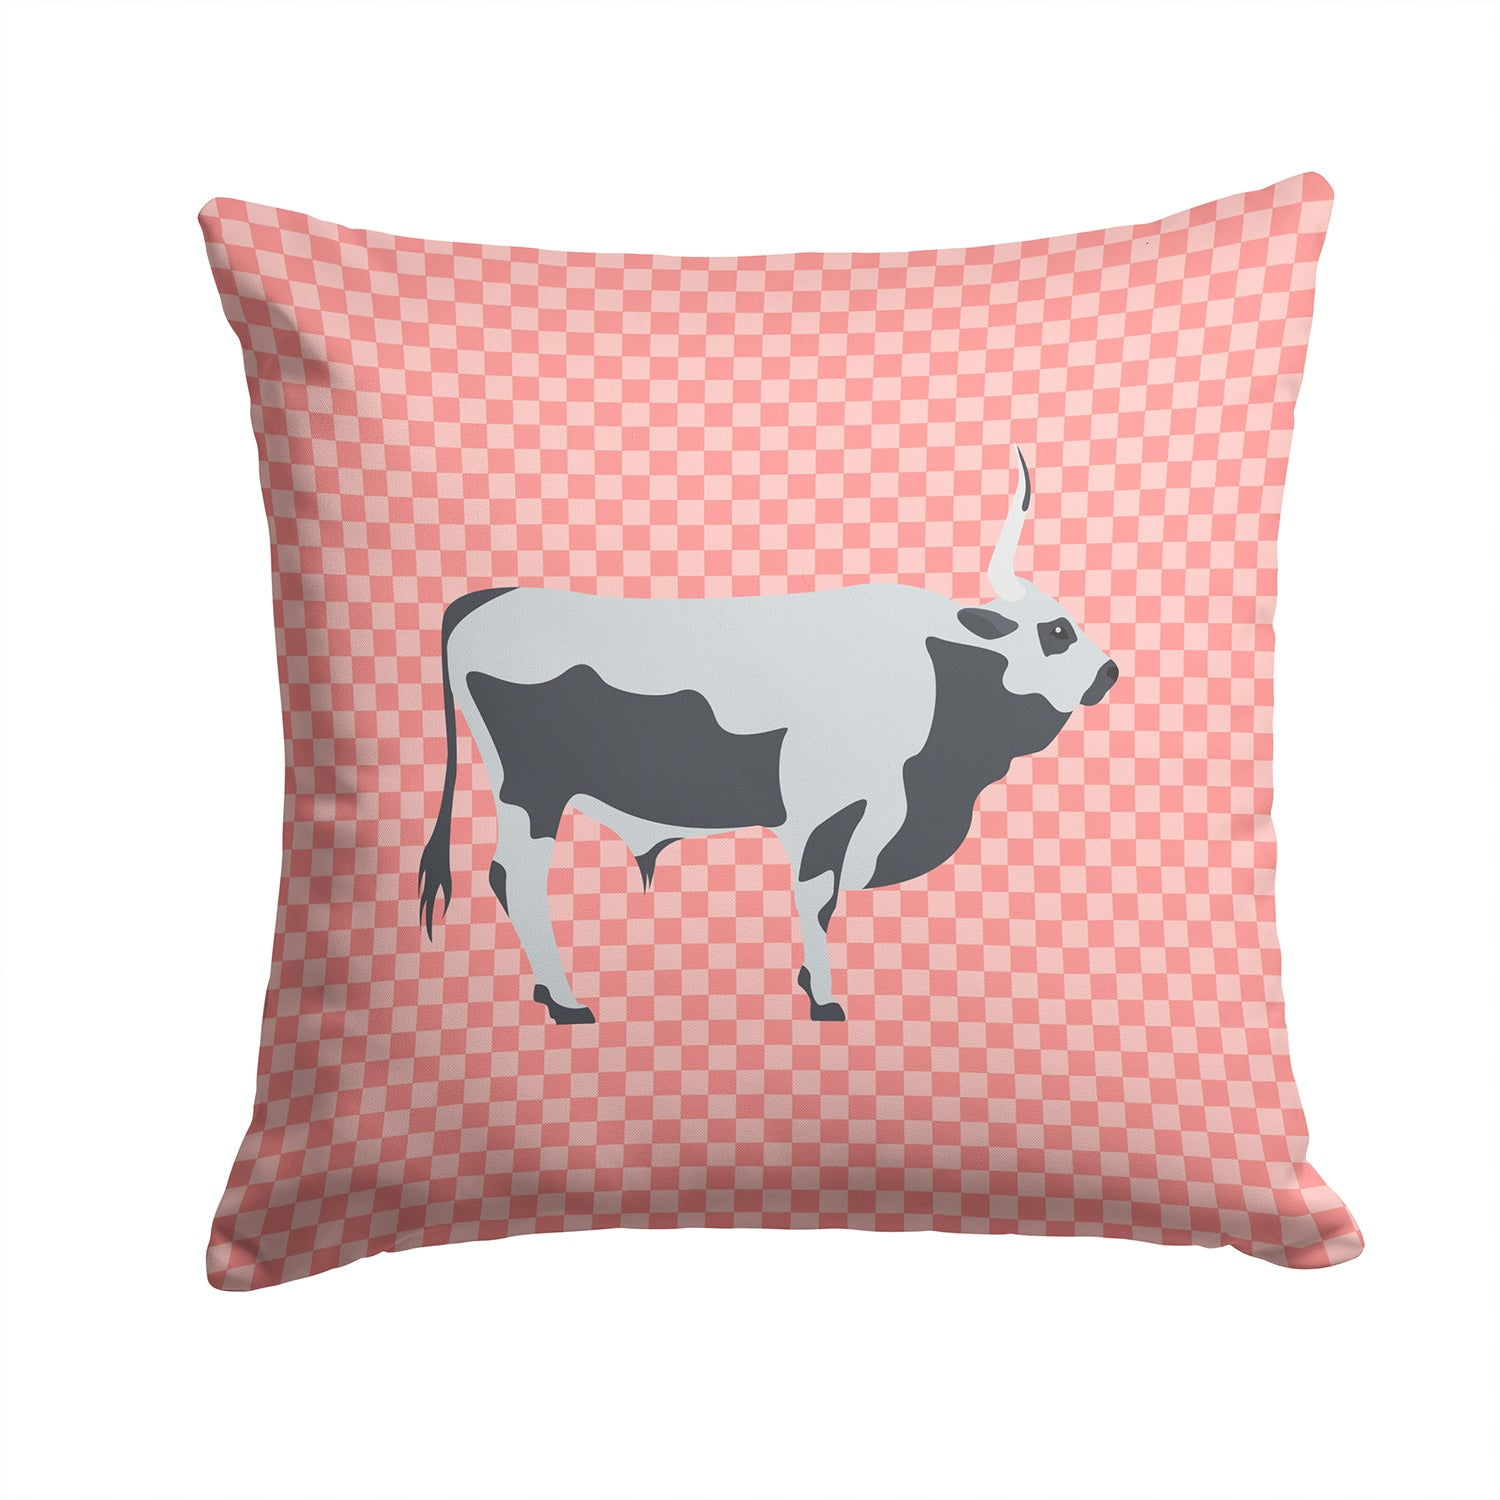 Hungarian Grey Steppe Cow Pink Check Fabric Decorative Pillow BB7824PW1414 by Caroline's Treasures